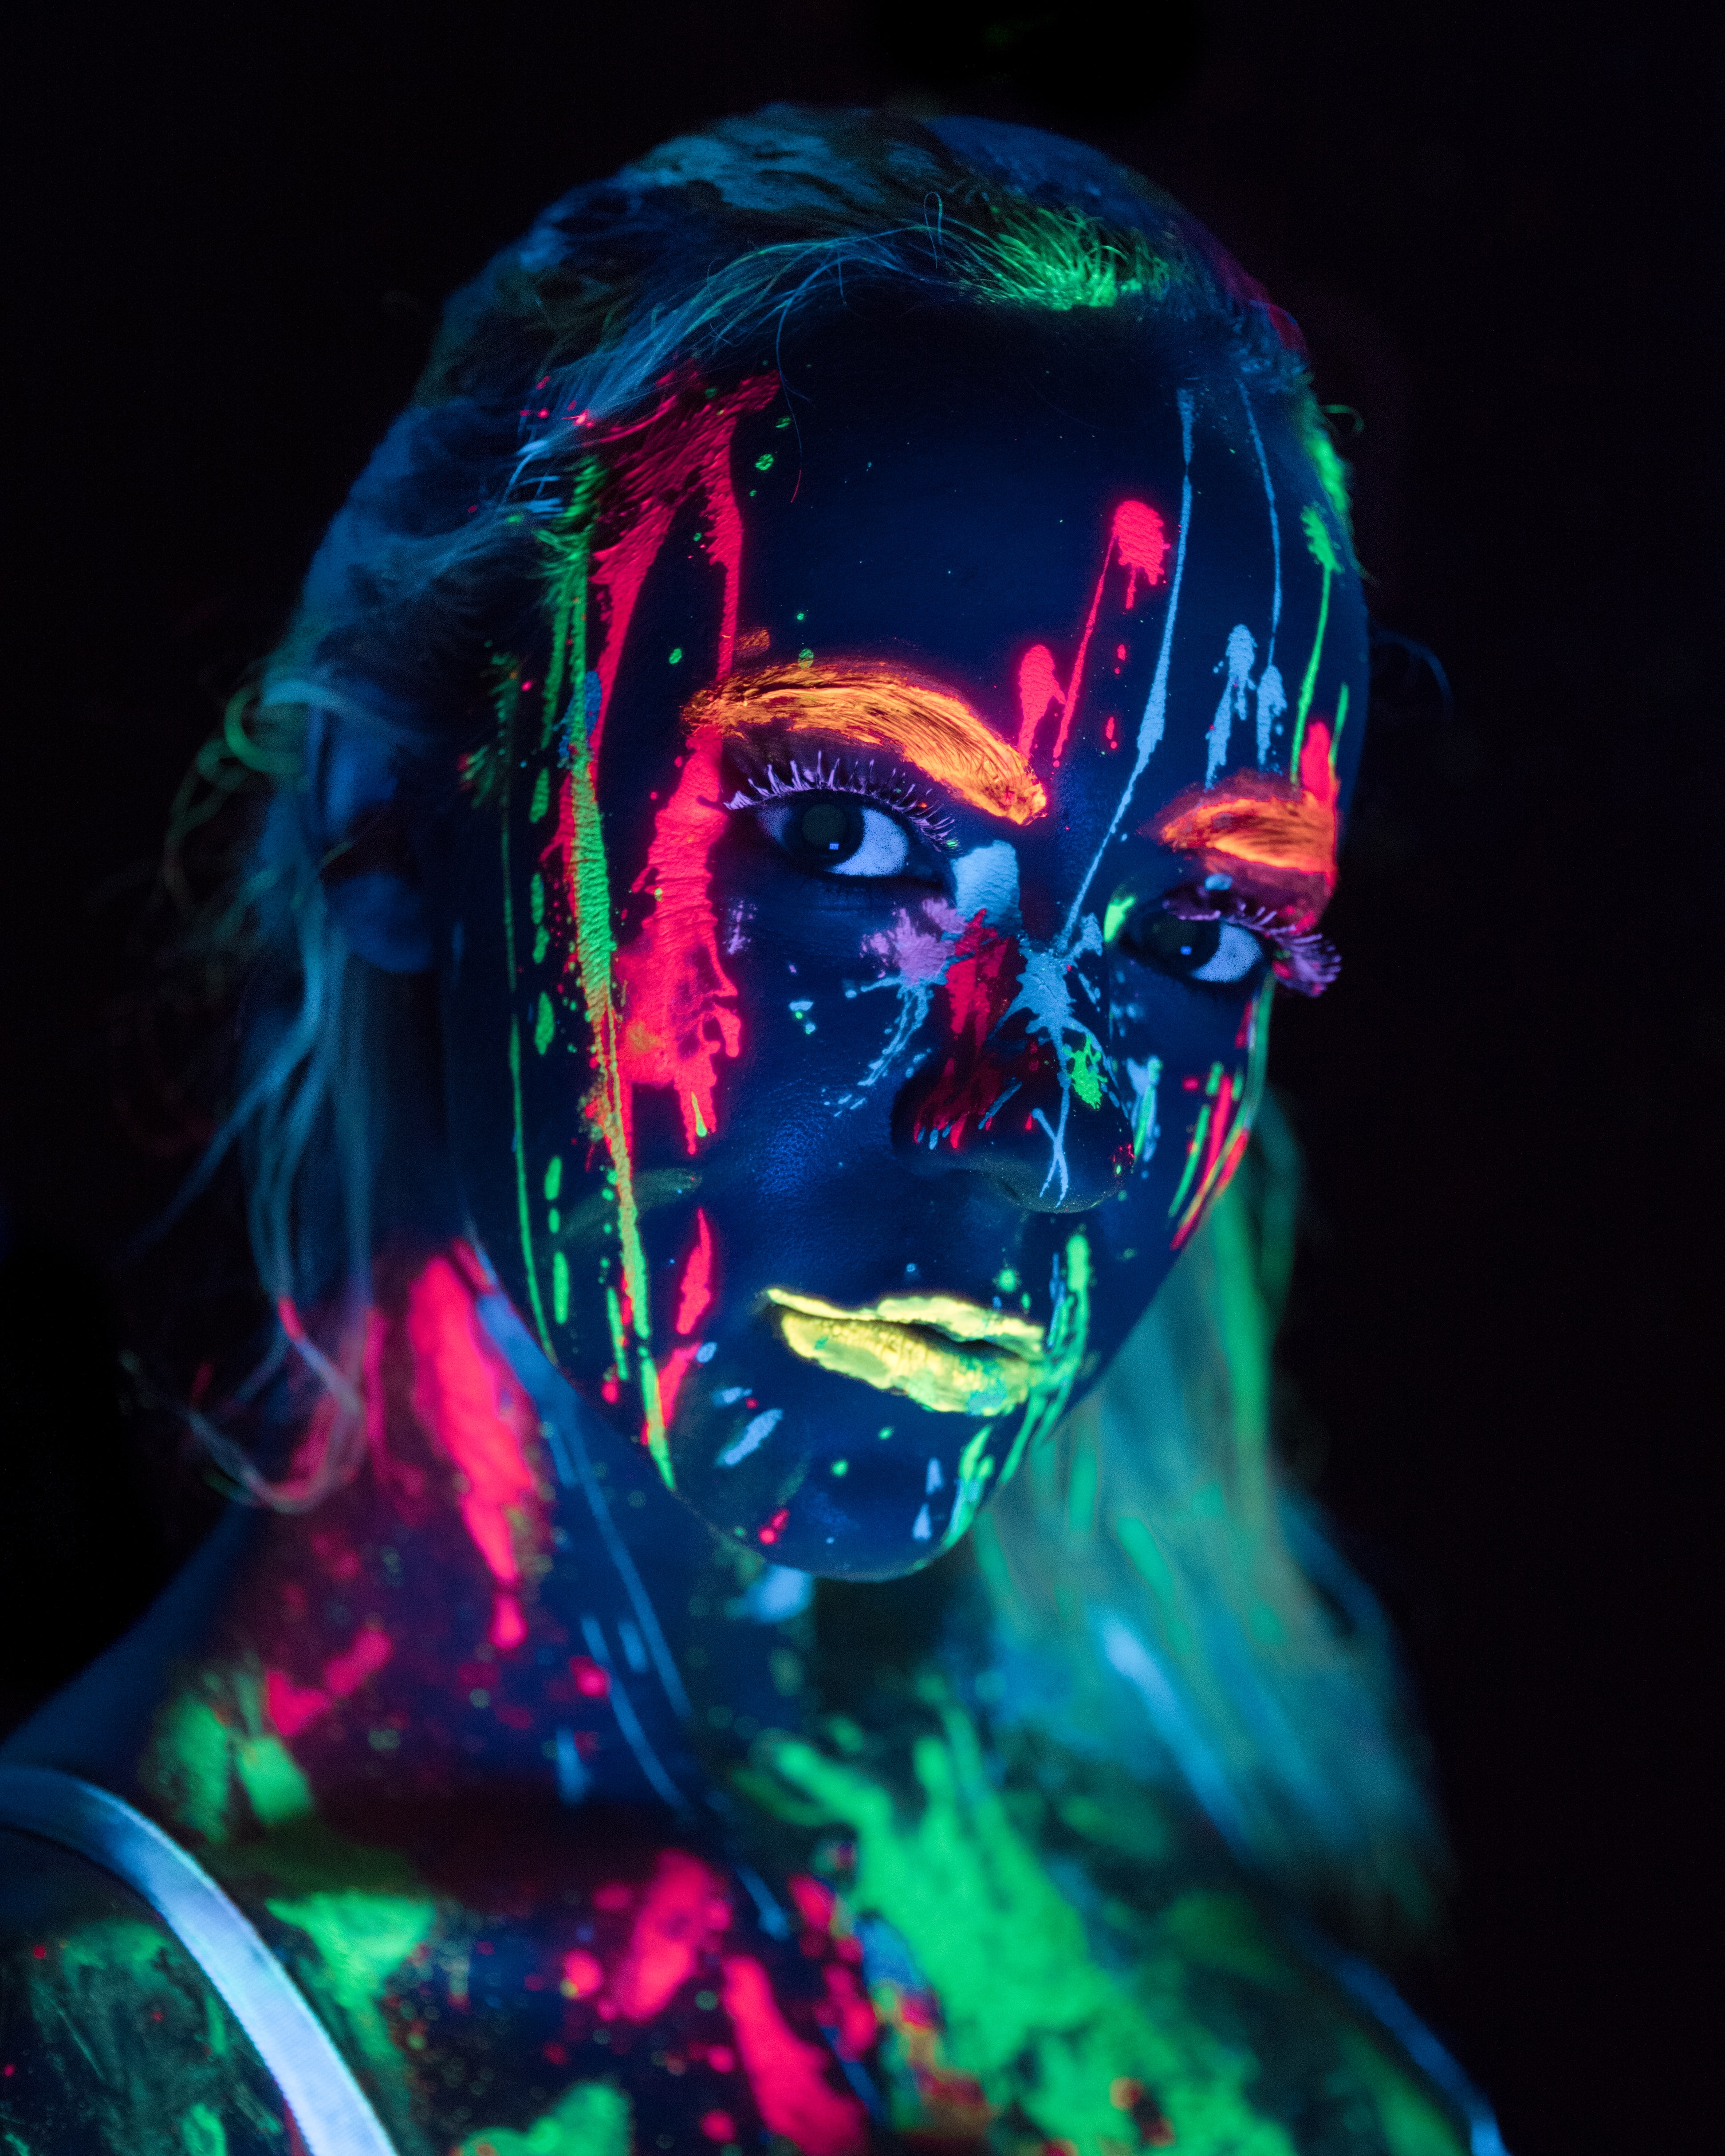 woman with glow in the dark body paint